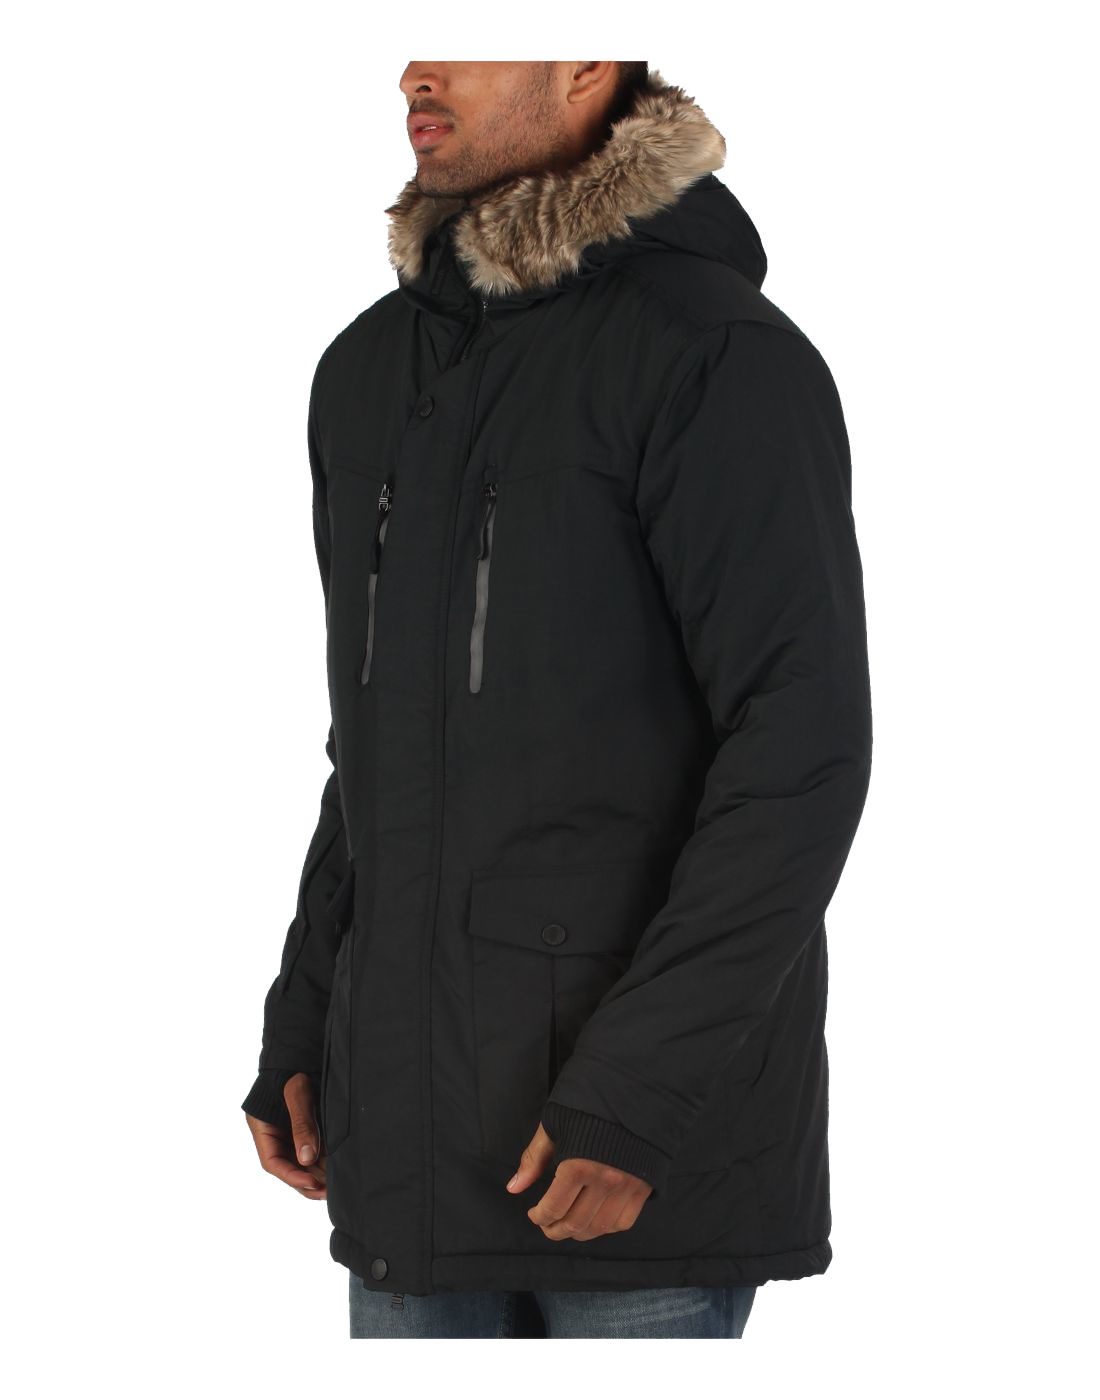 Mens Parka Hoodie Jacket Bench 'Nomen' Coat Water ...